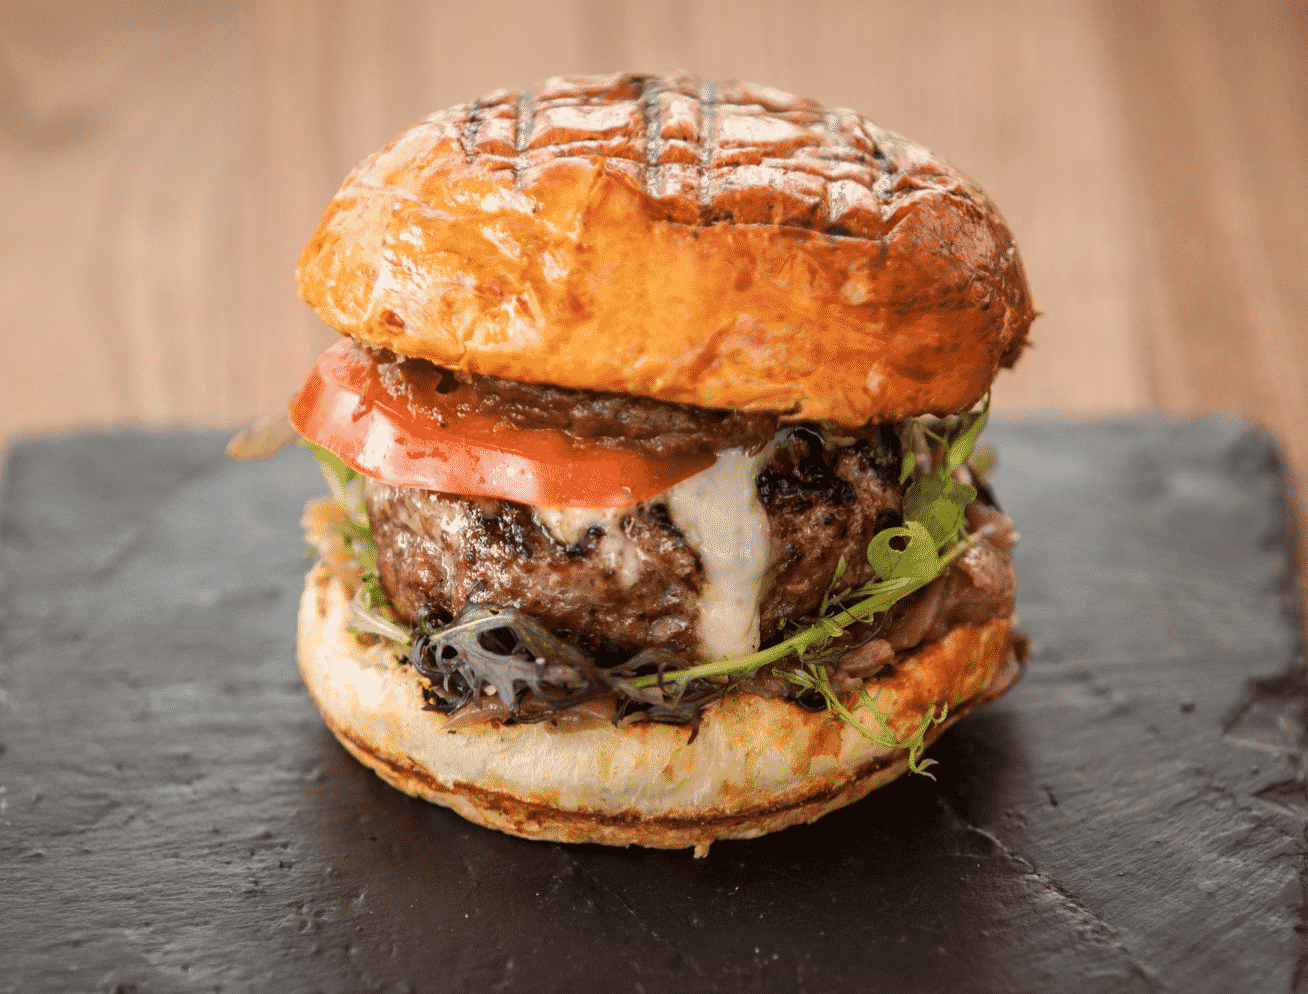 The 7 Best Zagreb Burgers